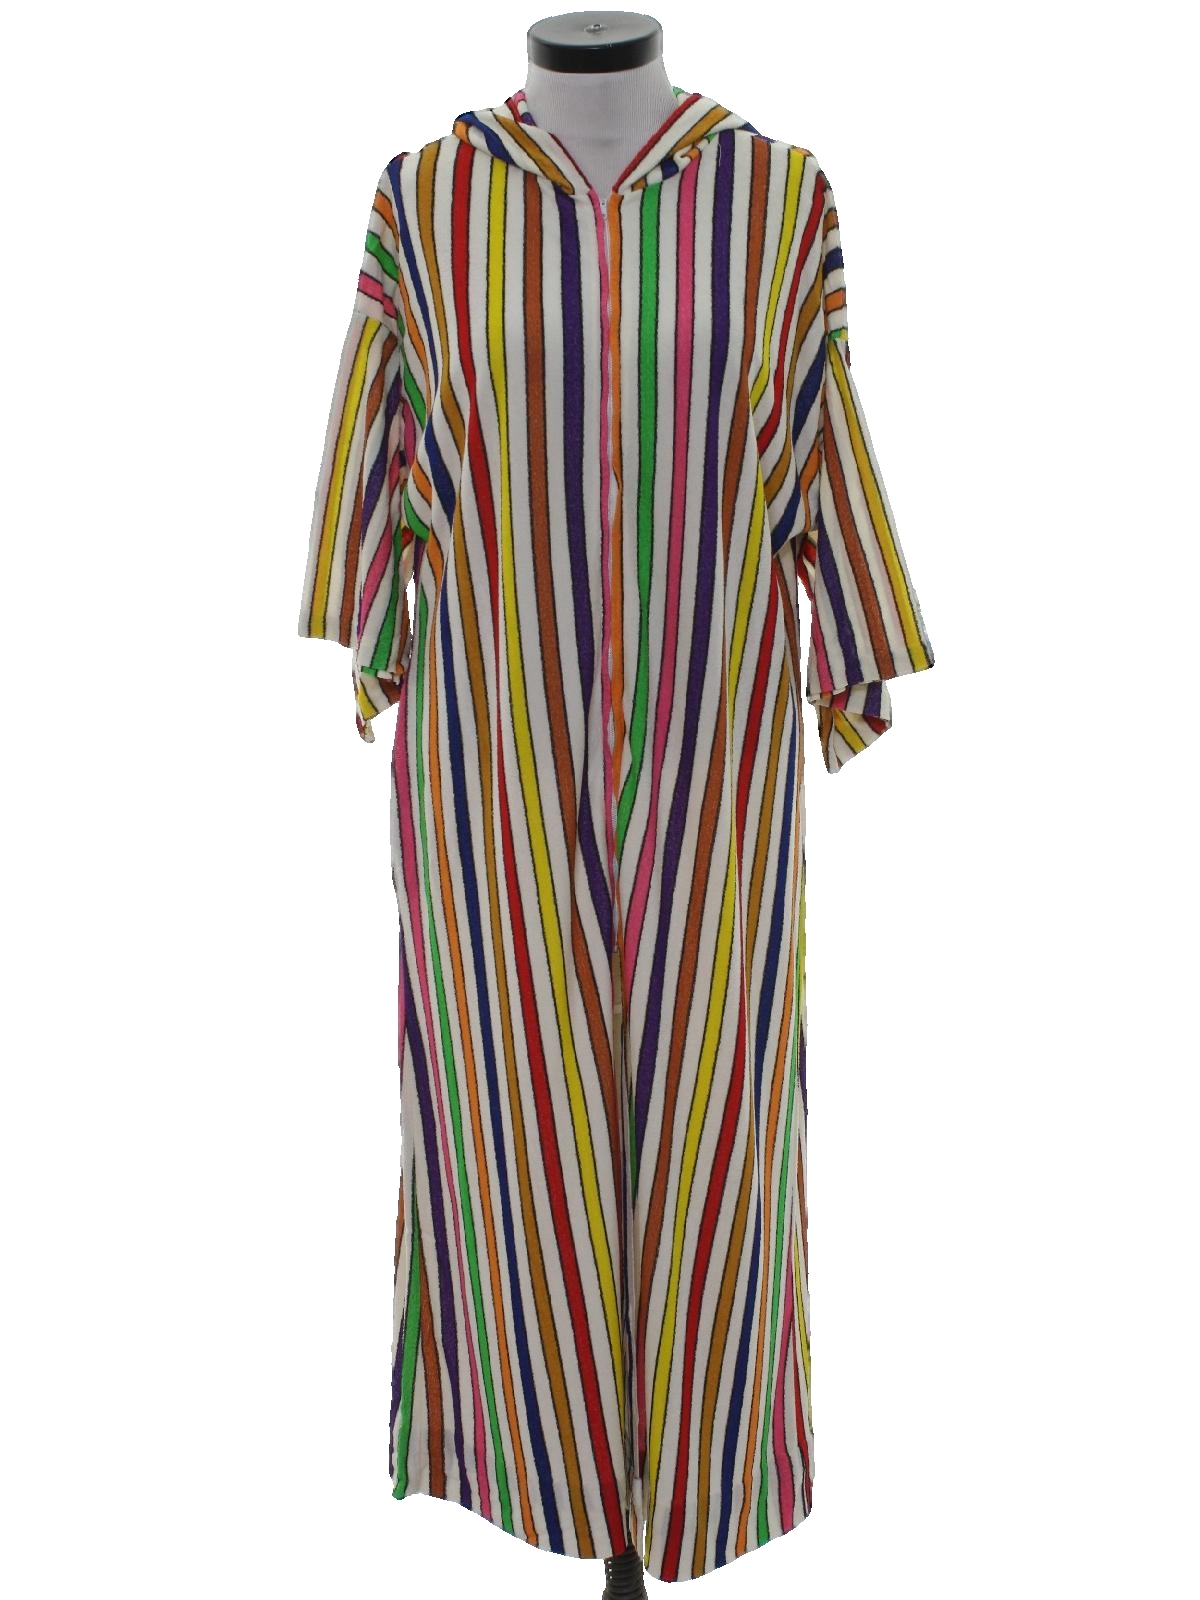 55b92d7beaa8 Vintage Care Label Sixties Womens Maxi Terry Cloth Robe  60s -Care Label-  Womens white and rainbow stripe print background acrylic blend terry cloth  short ...